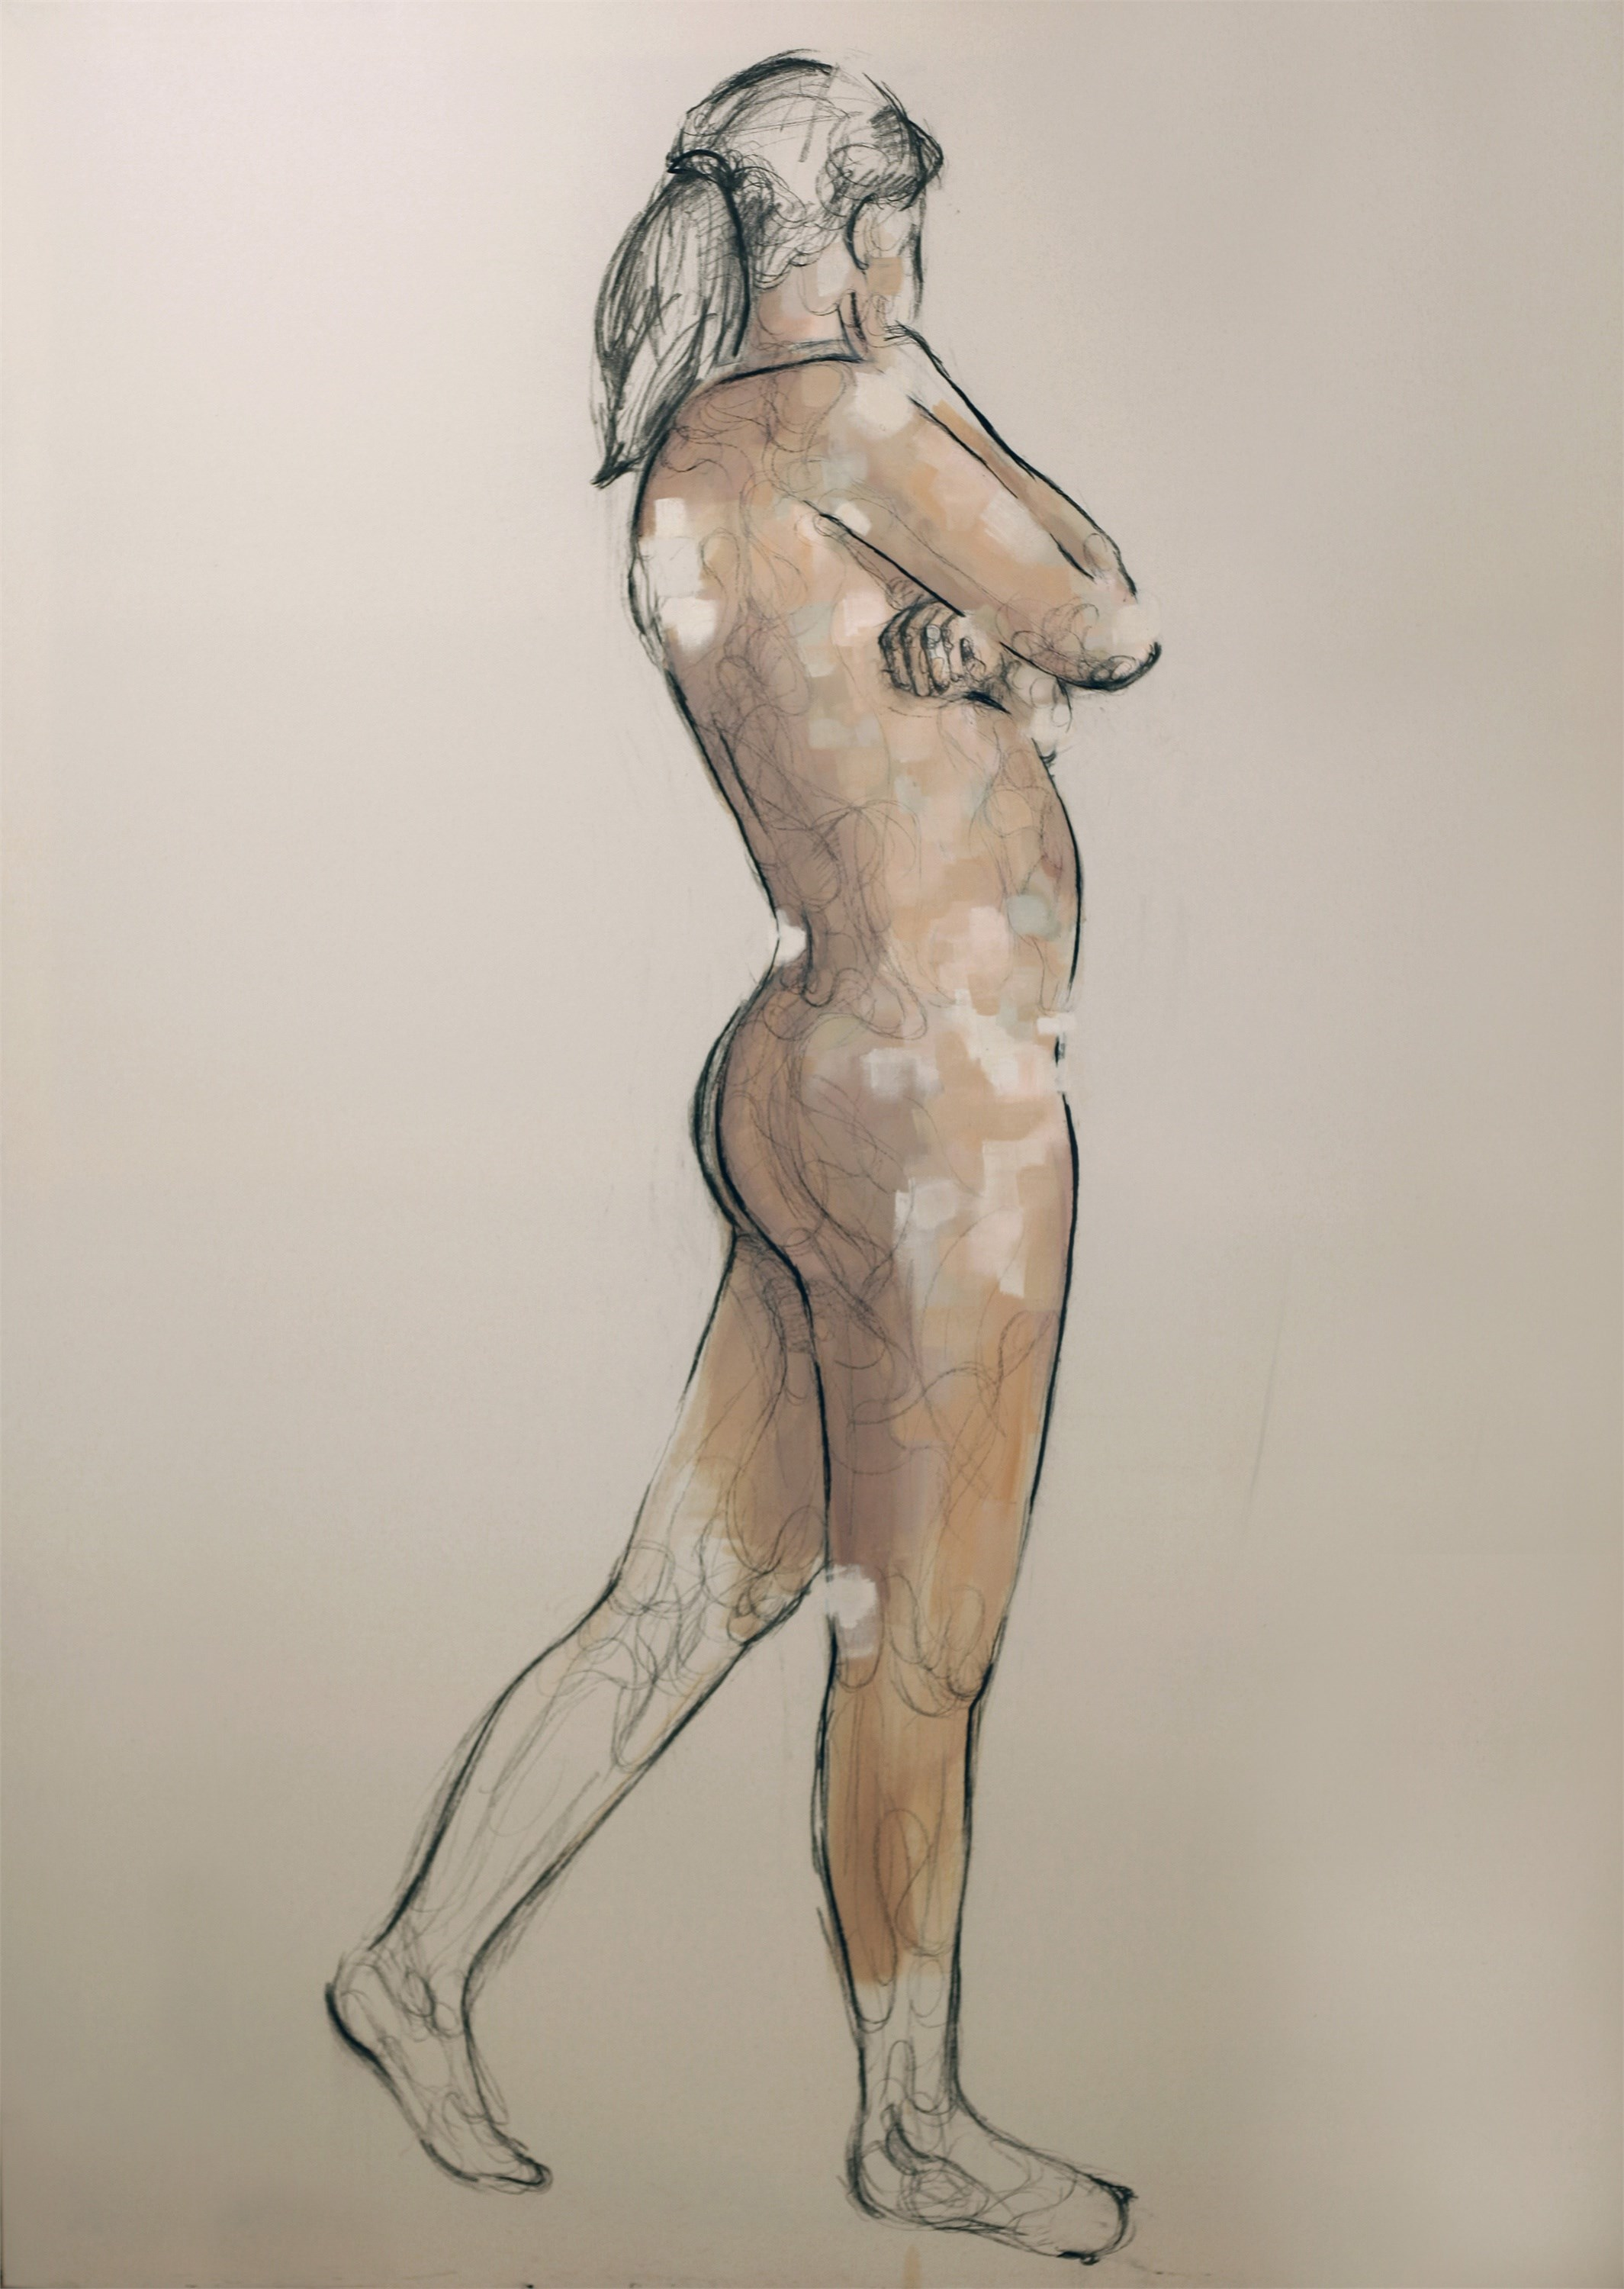 Nude 4, original Big Canvas Painting by Giorgos Kapsalakis